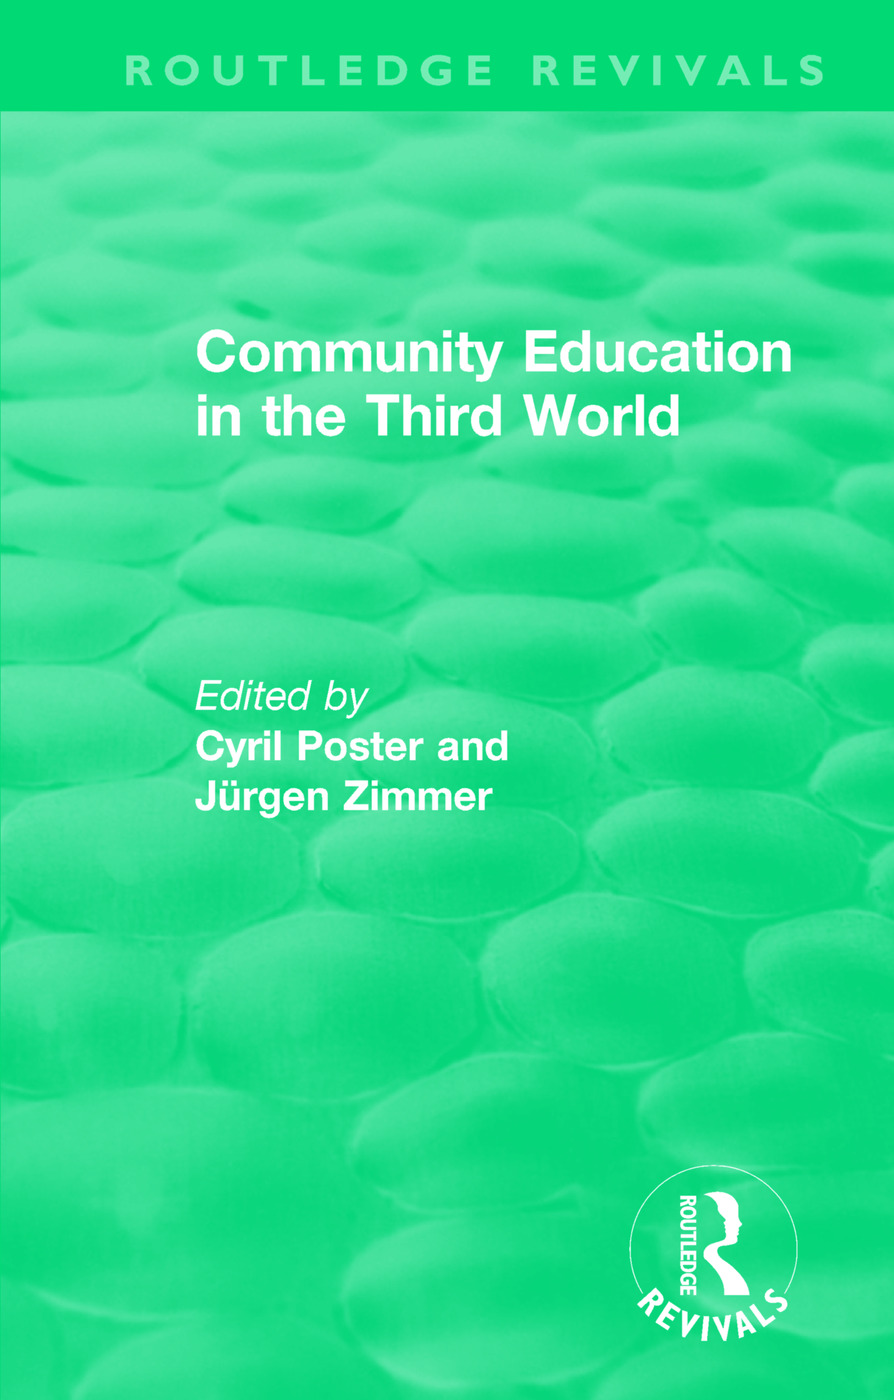 Community Education in the Third World